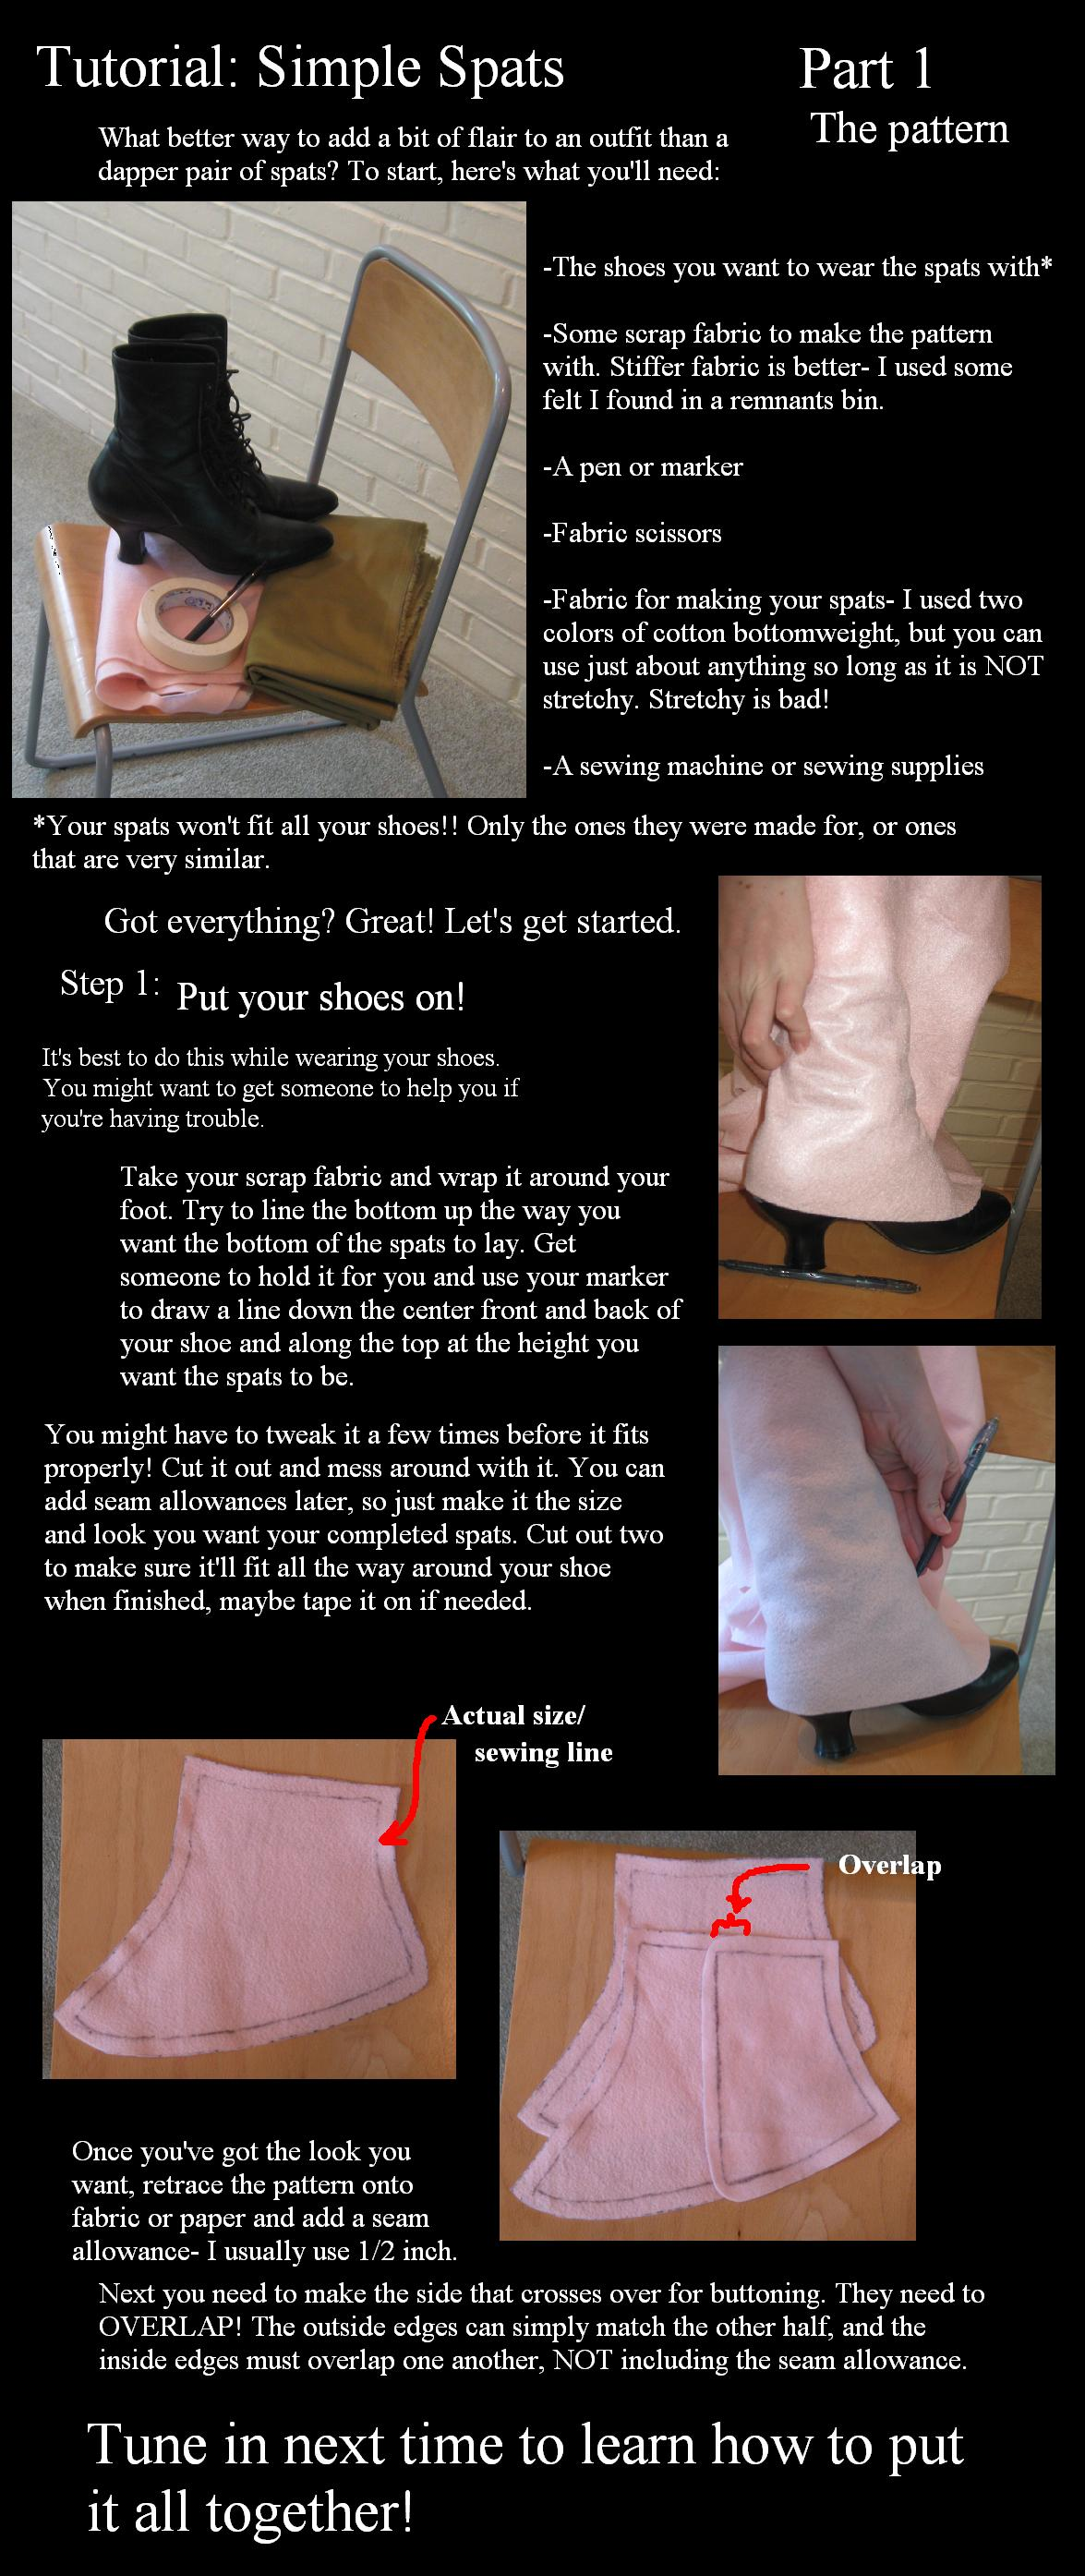 Spats tutorial part 1- pattern by Animus-Panthera